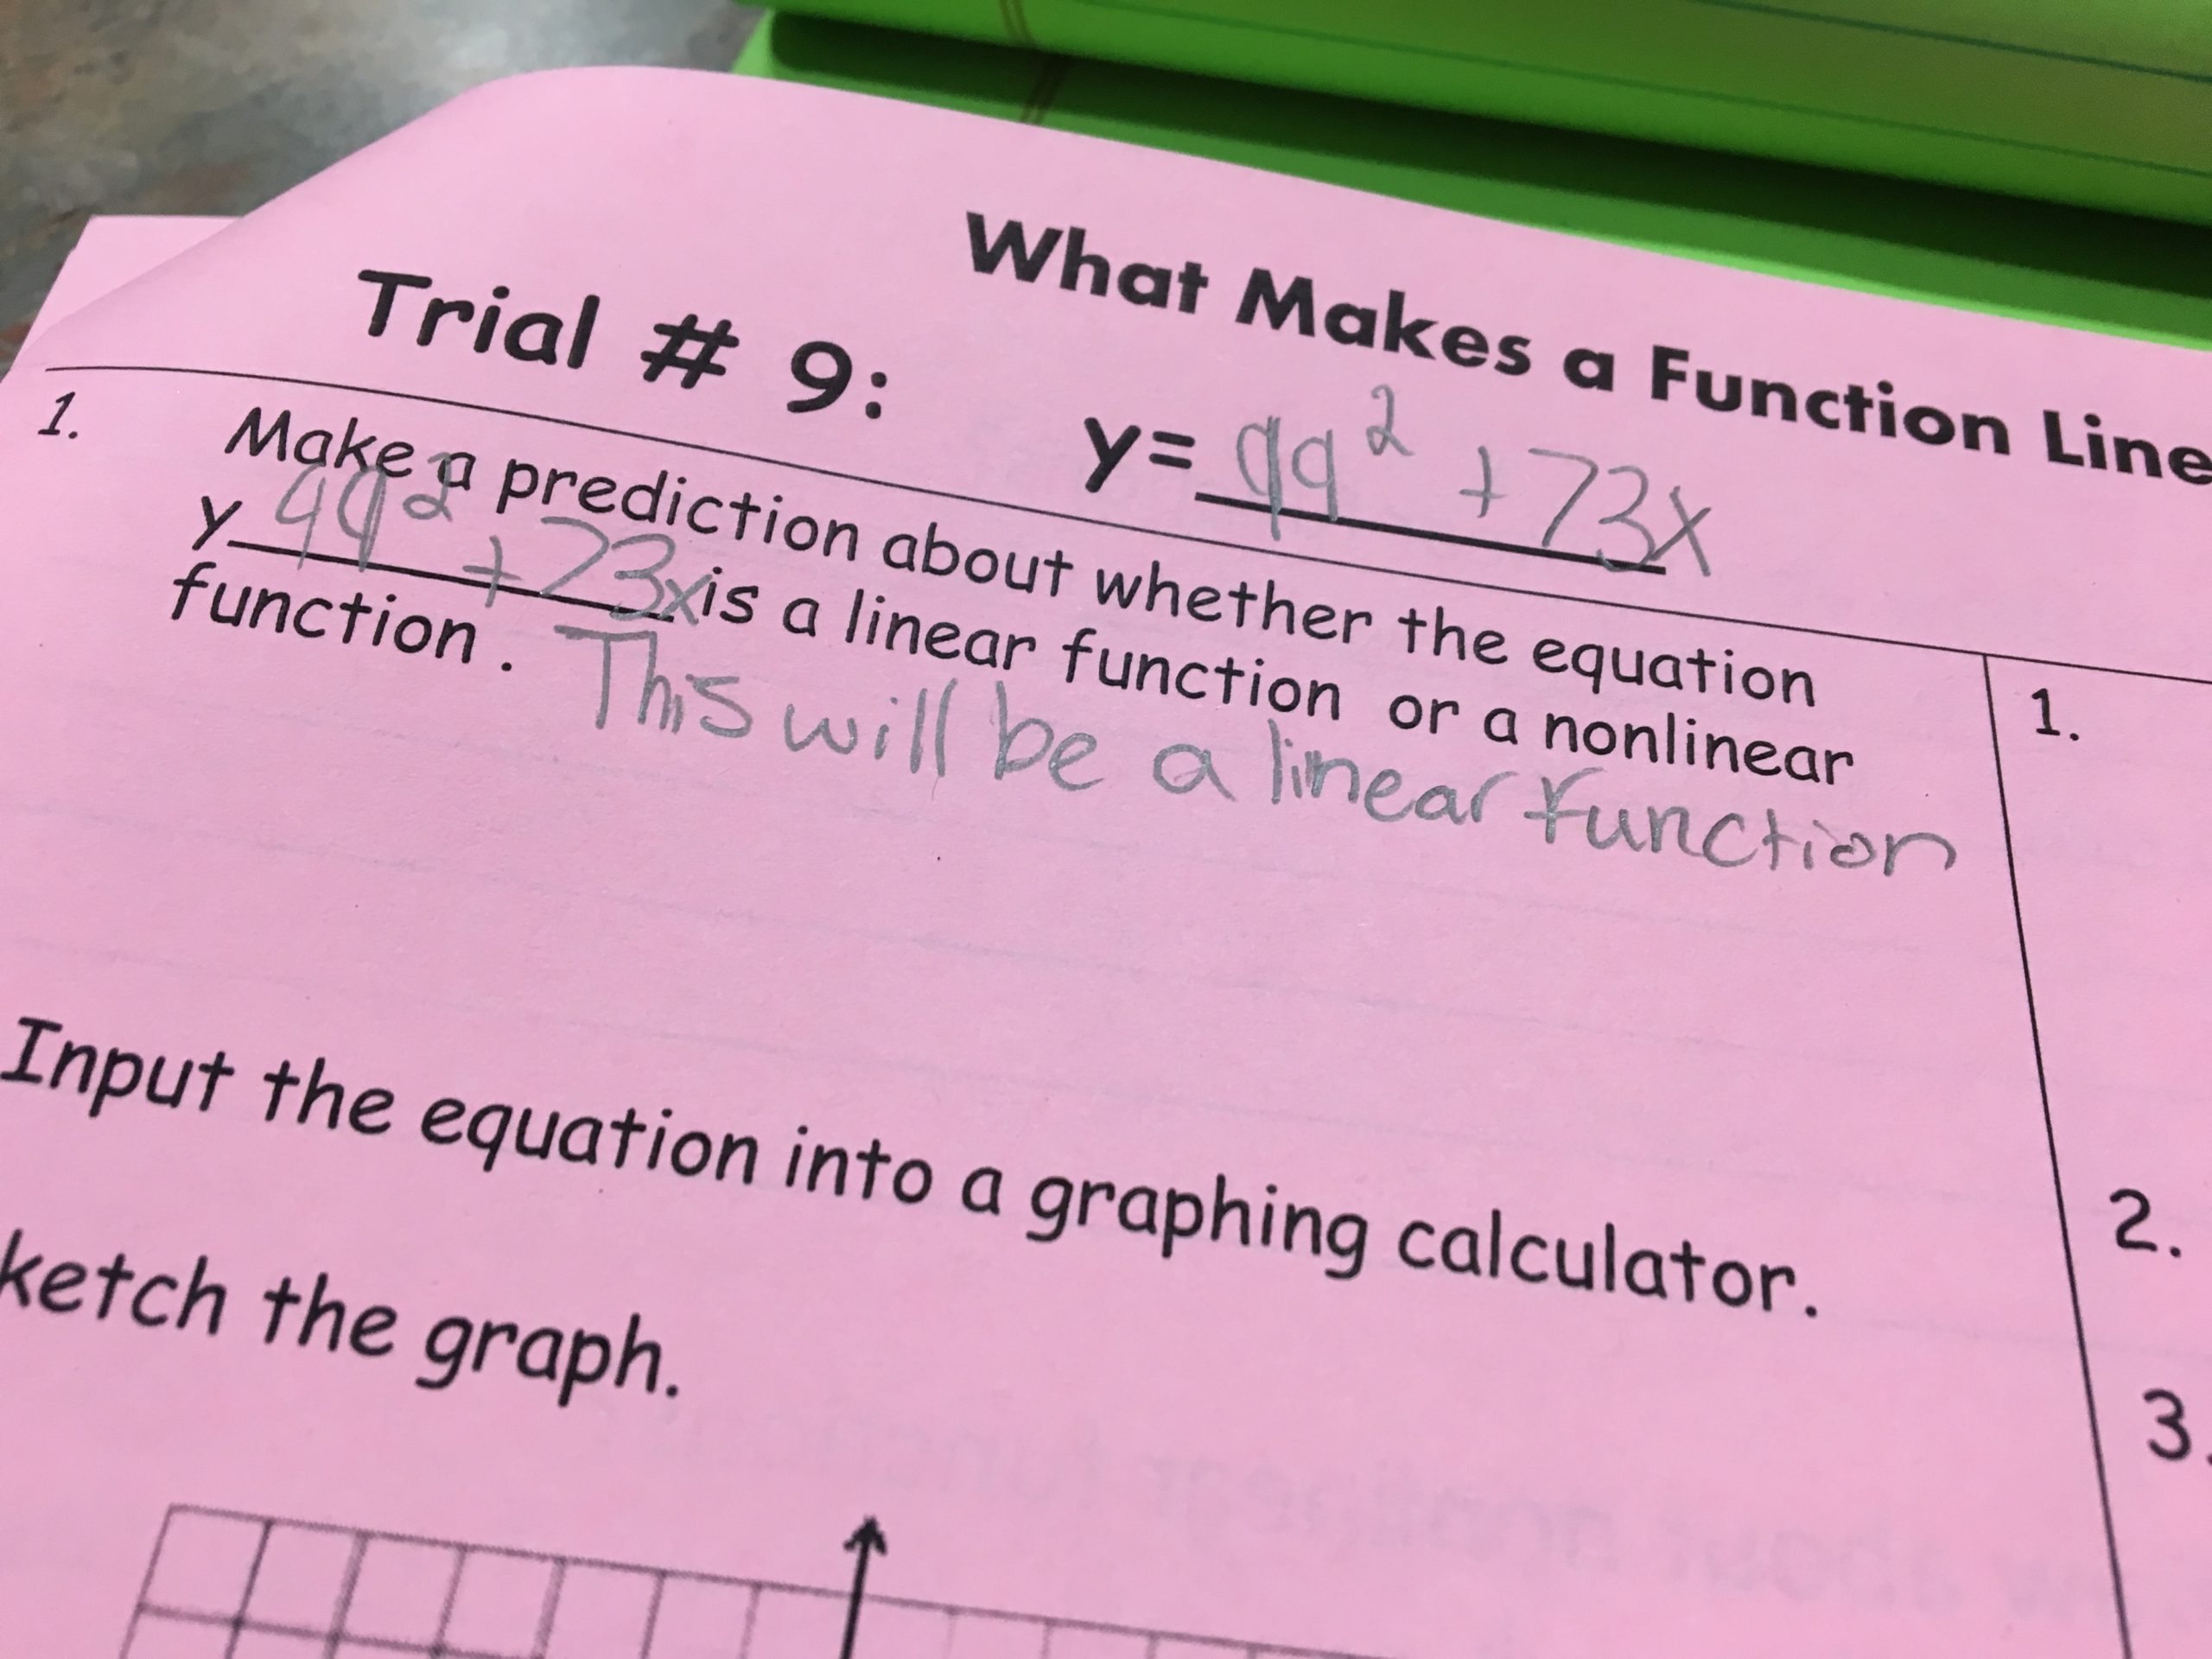 teaching linear versus nonlinear functions through discovery - idea